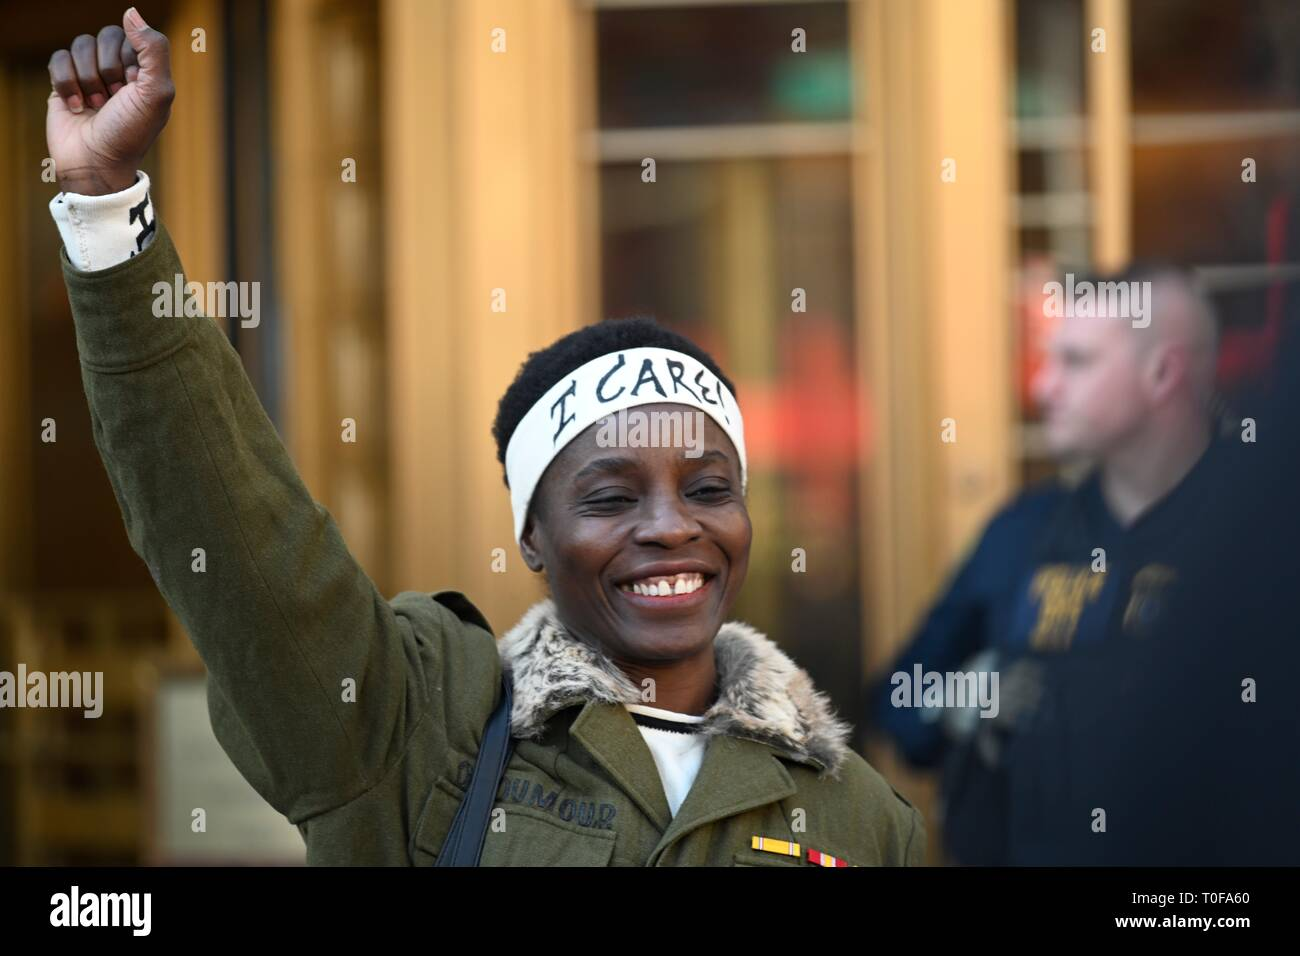 New York, NY, USA. 19 March 2019  State of Liberty climber Patricia Okoumou smiles while leaving court after being sentenced to 5 years of probation for her July 4, 2018, act of civil disobedience to protest against Trump administration immigration policies.  Okoumou was convicted in December of misdemeanor charges of trespassing, disorderly conduct, and interfering with the functioning of government. Credit: Joseph Reid/Alamy Live News - Stock Image